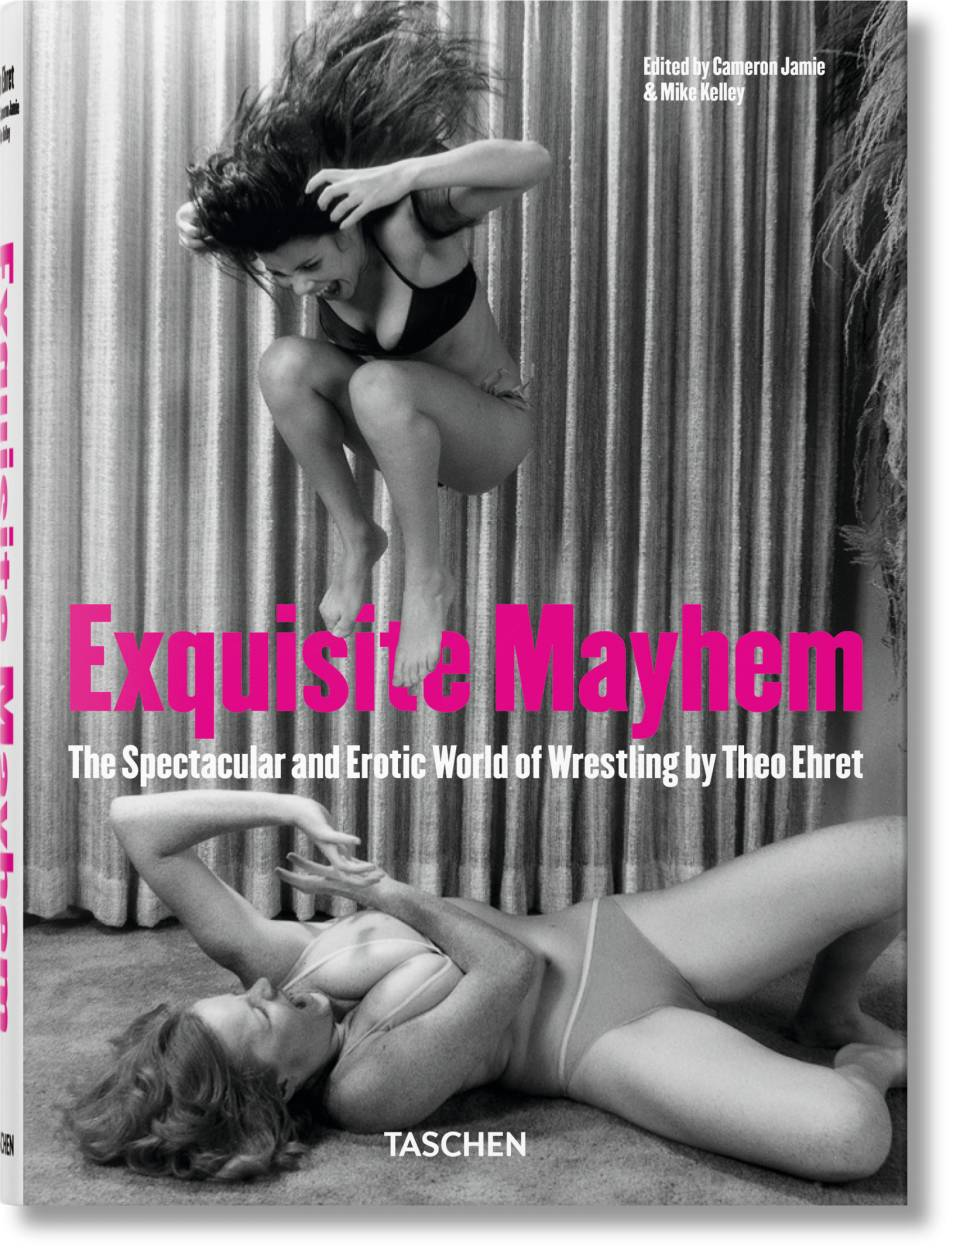 Exquisite Mayhem. The Spectacular and Erotic World of Wrestling - image 1